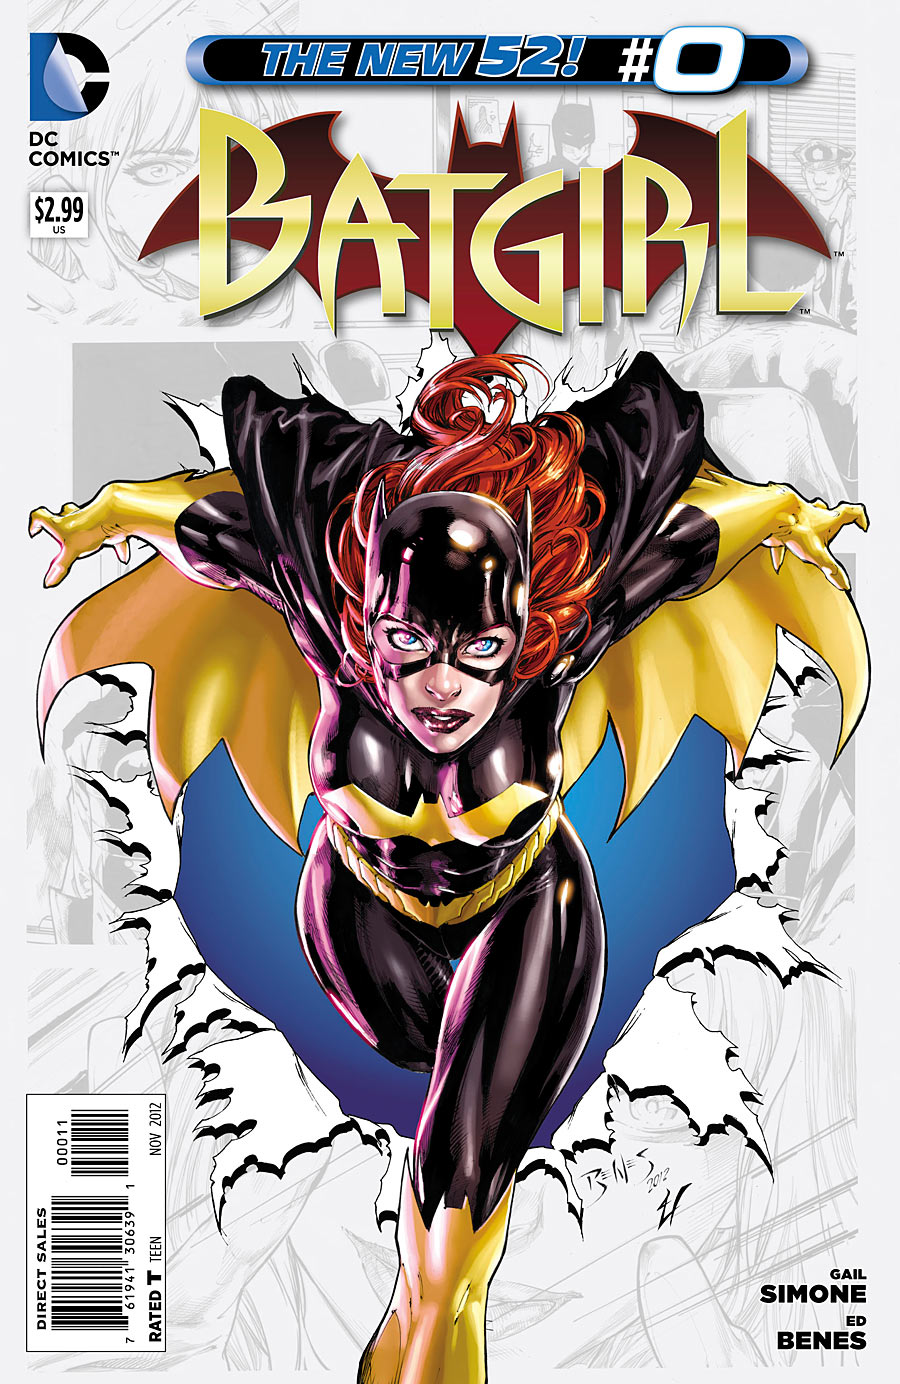 Batgirl 0 issue